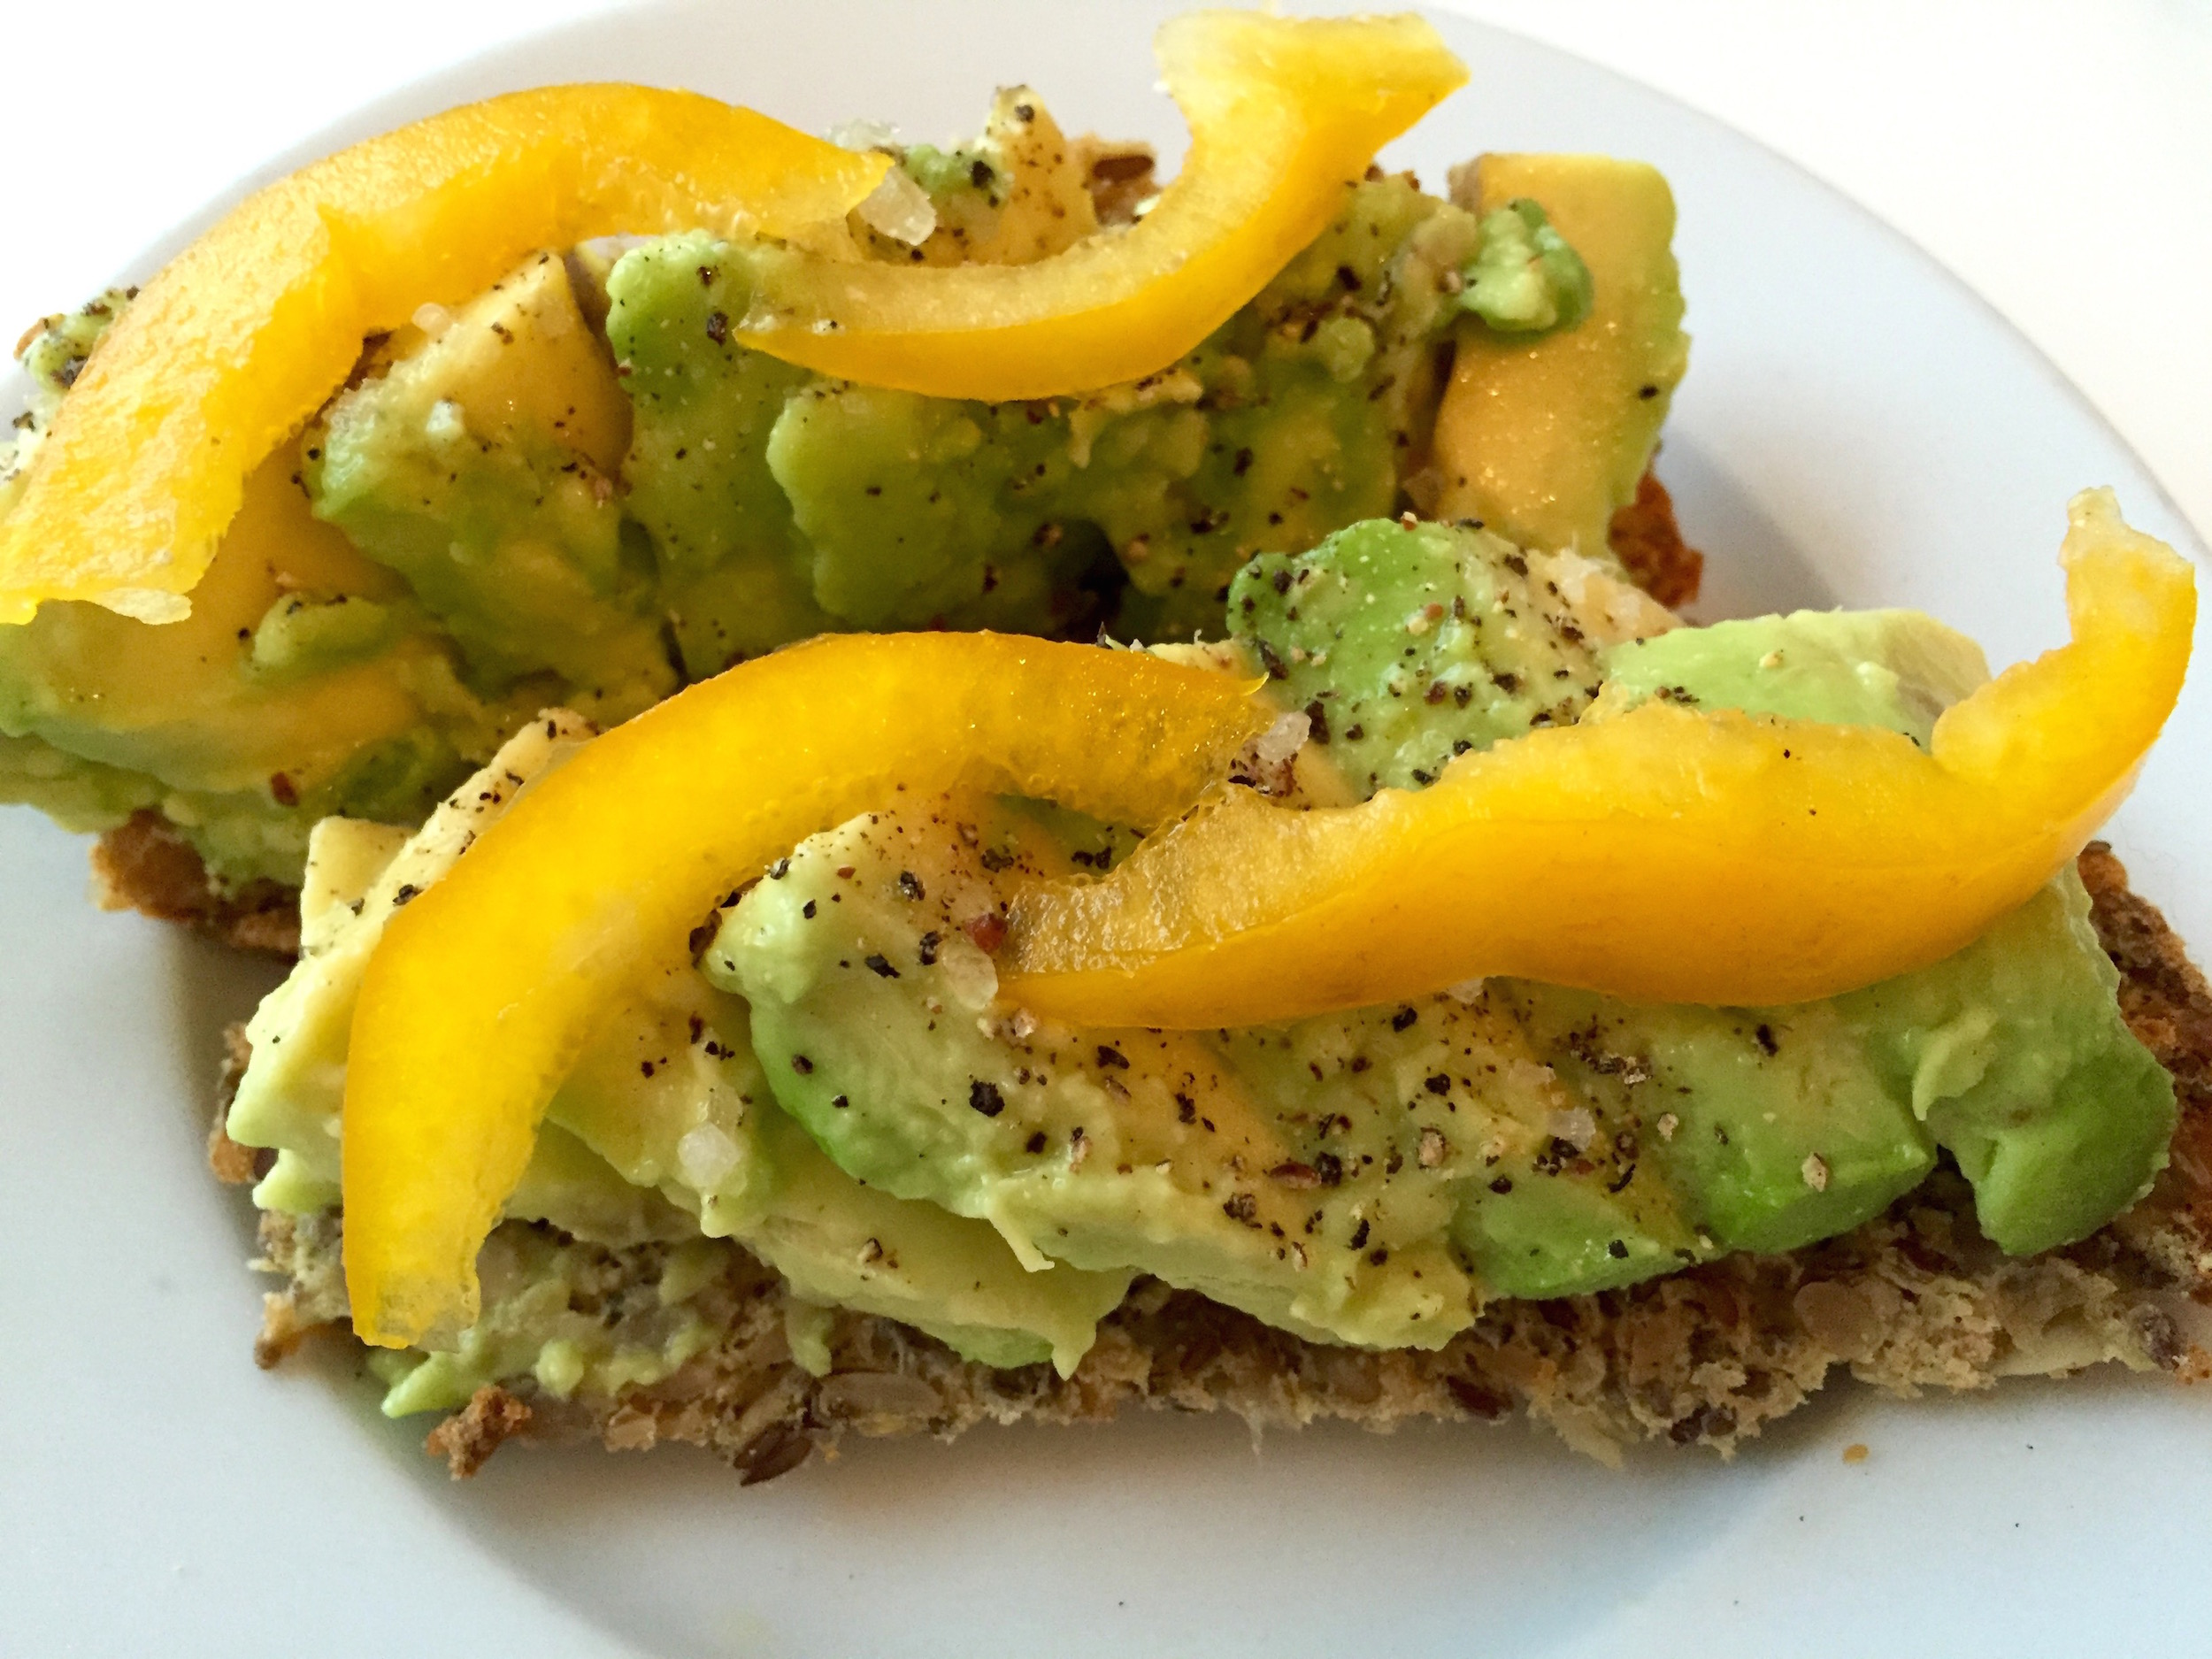 Avocado on bread made of seeds